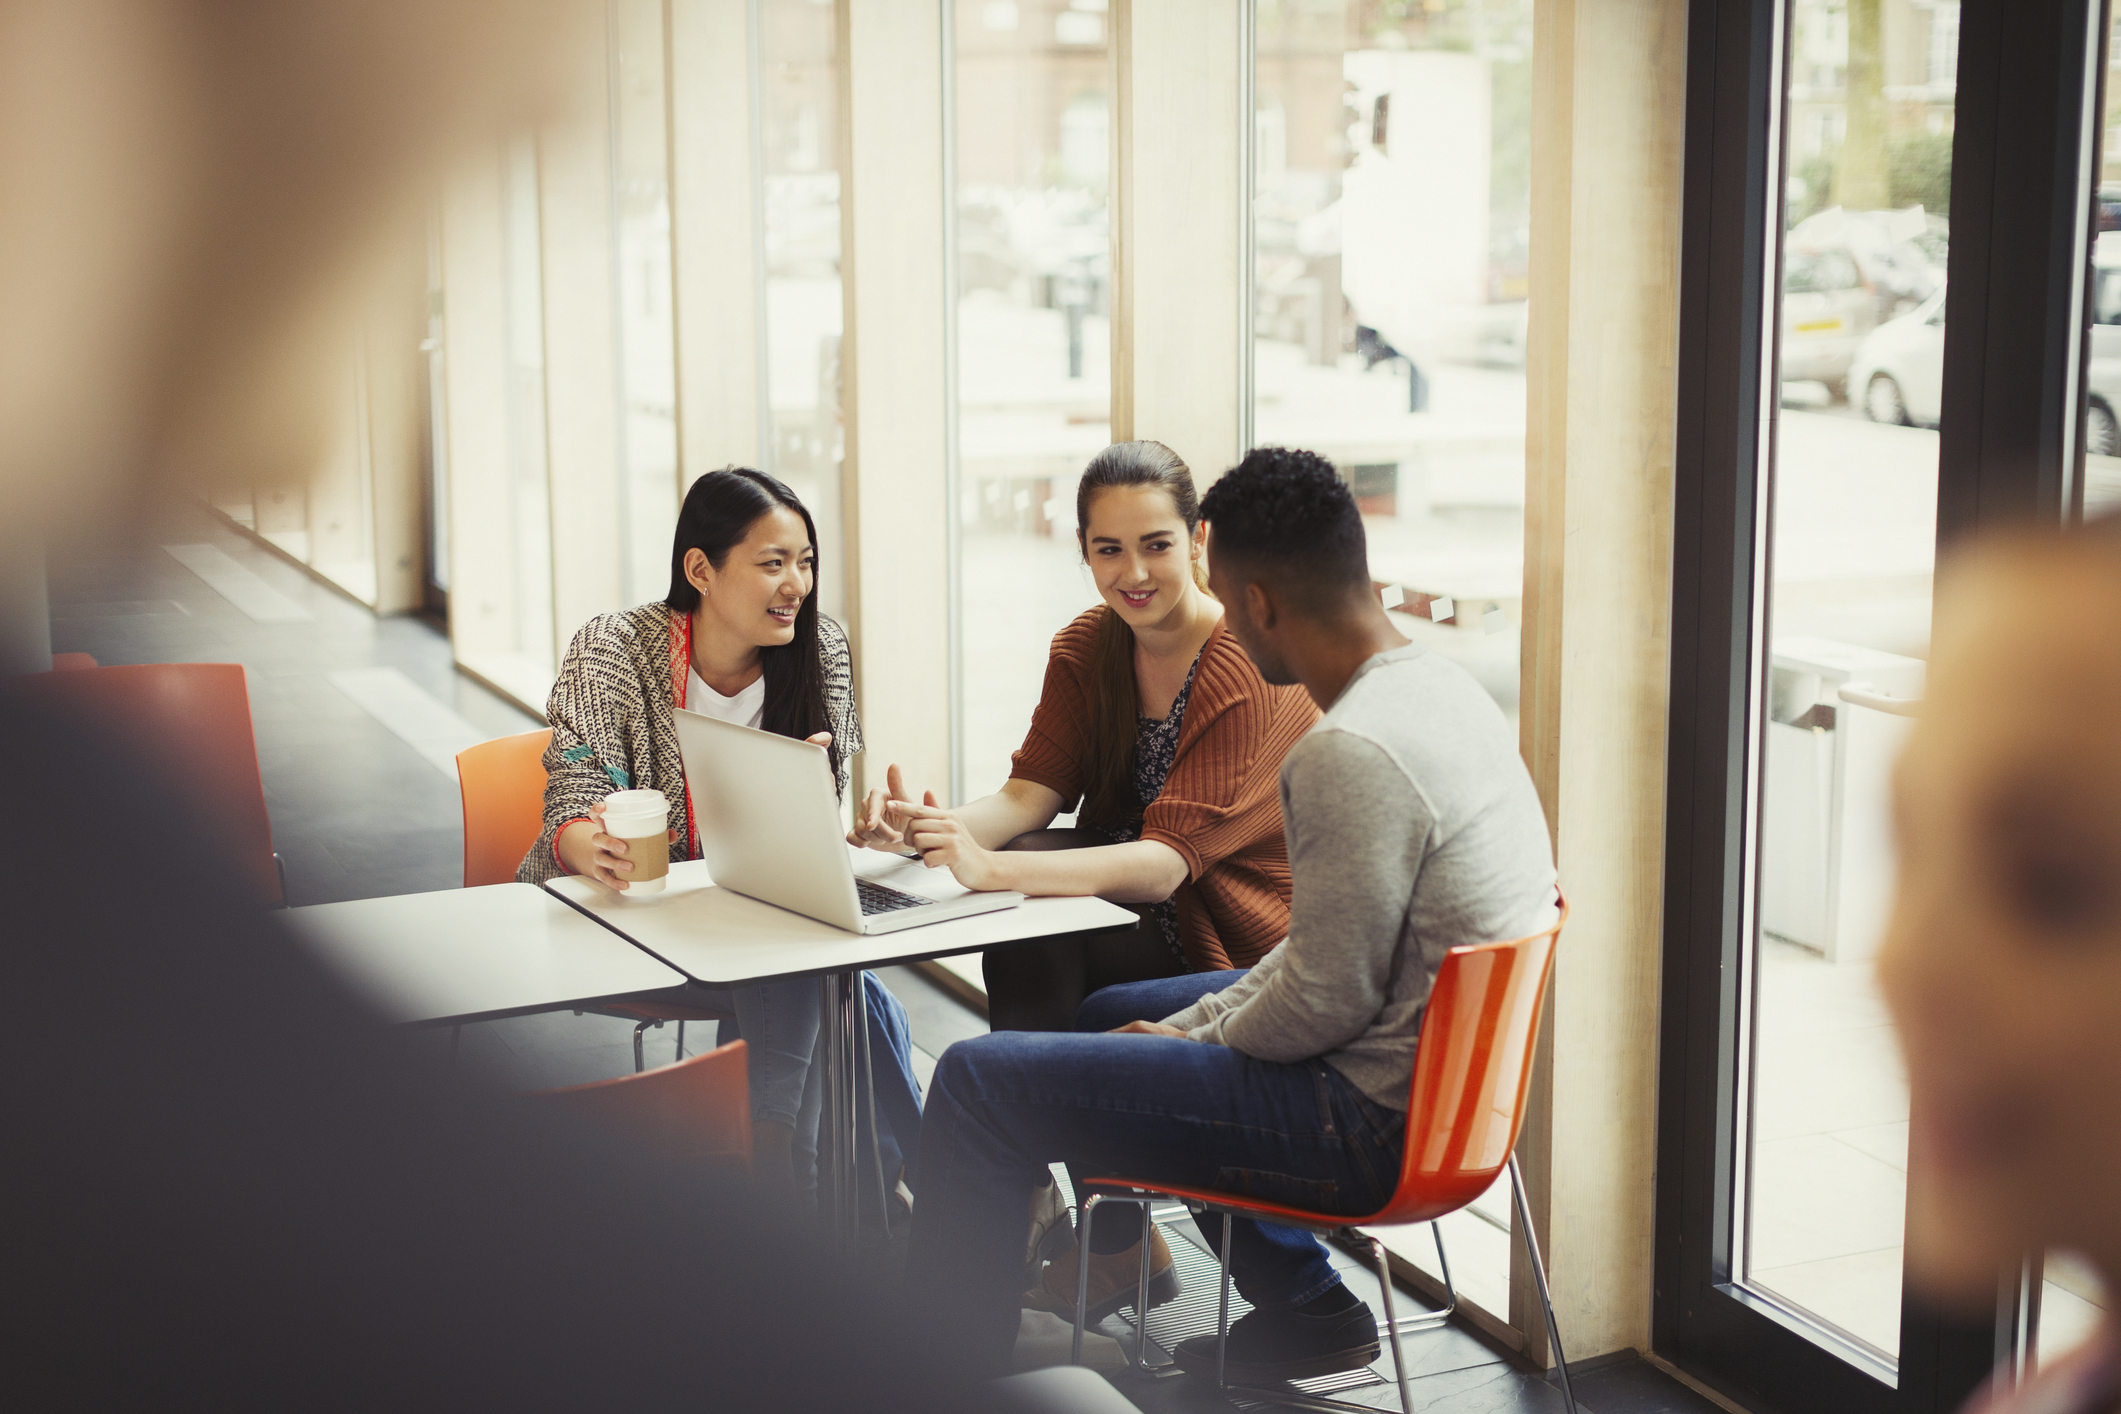 Stop at College Ave Student Loans to Cover Last-Minute College Financing Needs